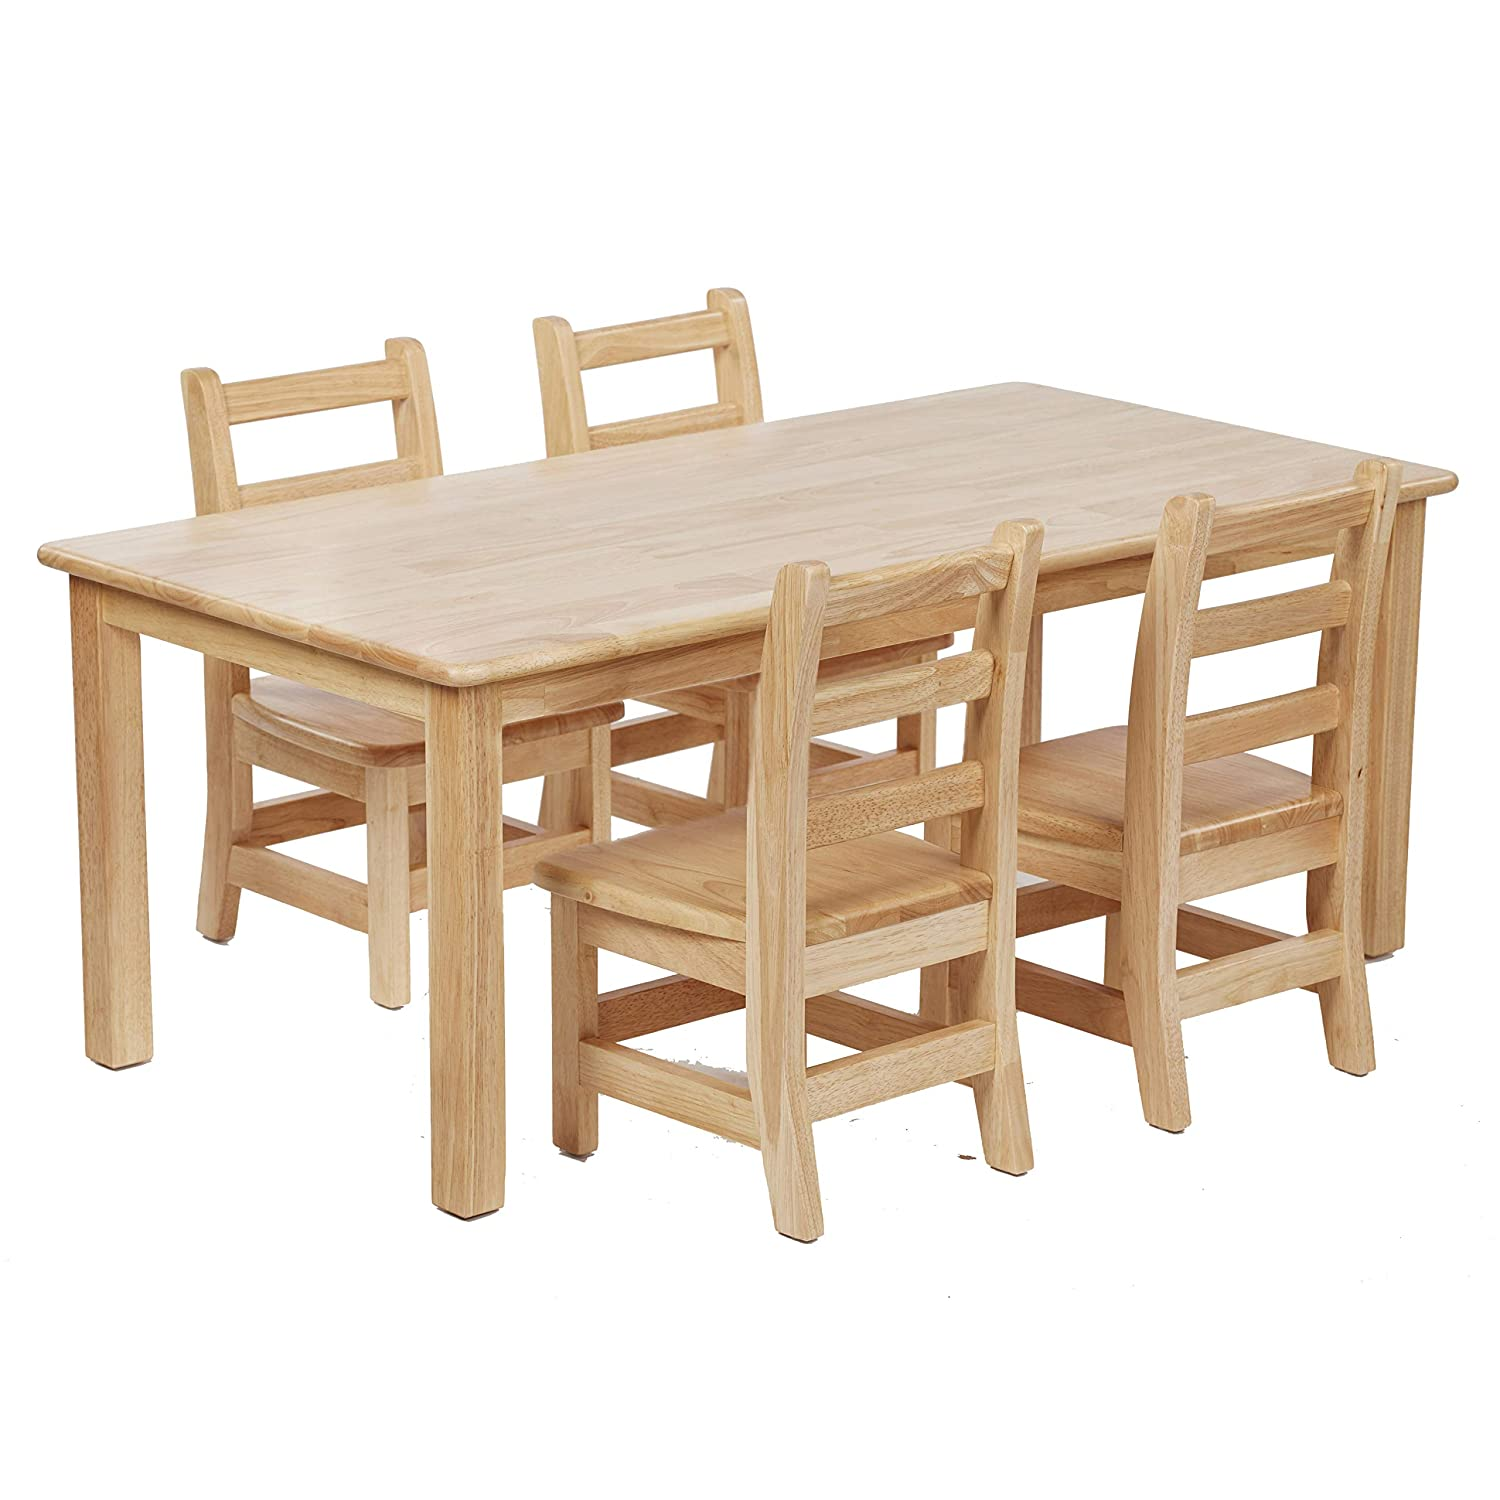 a801c62011c0c ECR4Kids Hardwood Kids Table and Chair Set - 24 x 48 Inch Rectangle Table  with Four 10 Inch Ladderback Chairs - Childrens Furniture for Playrooms